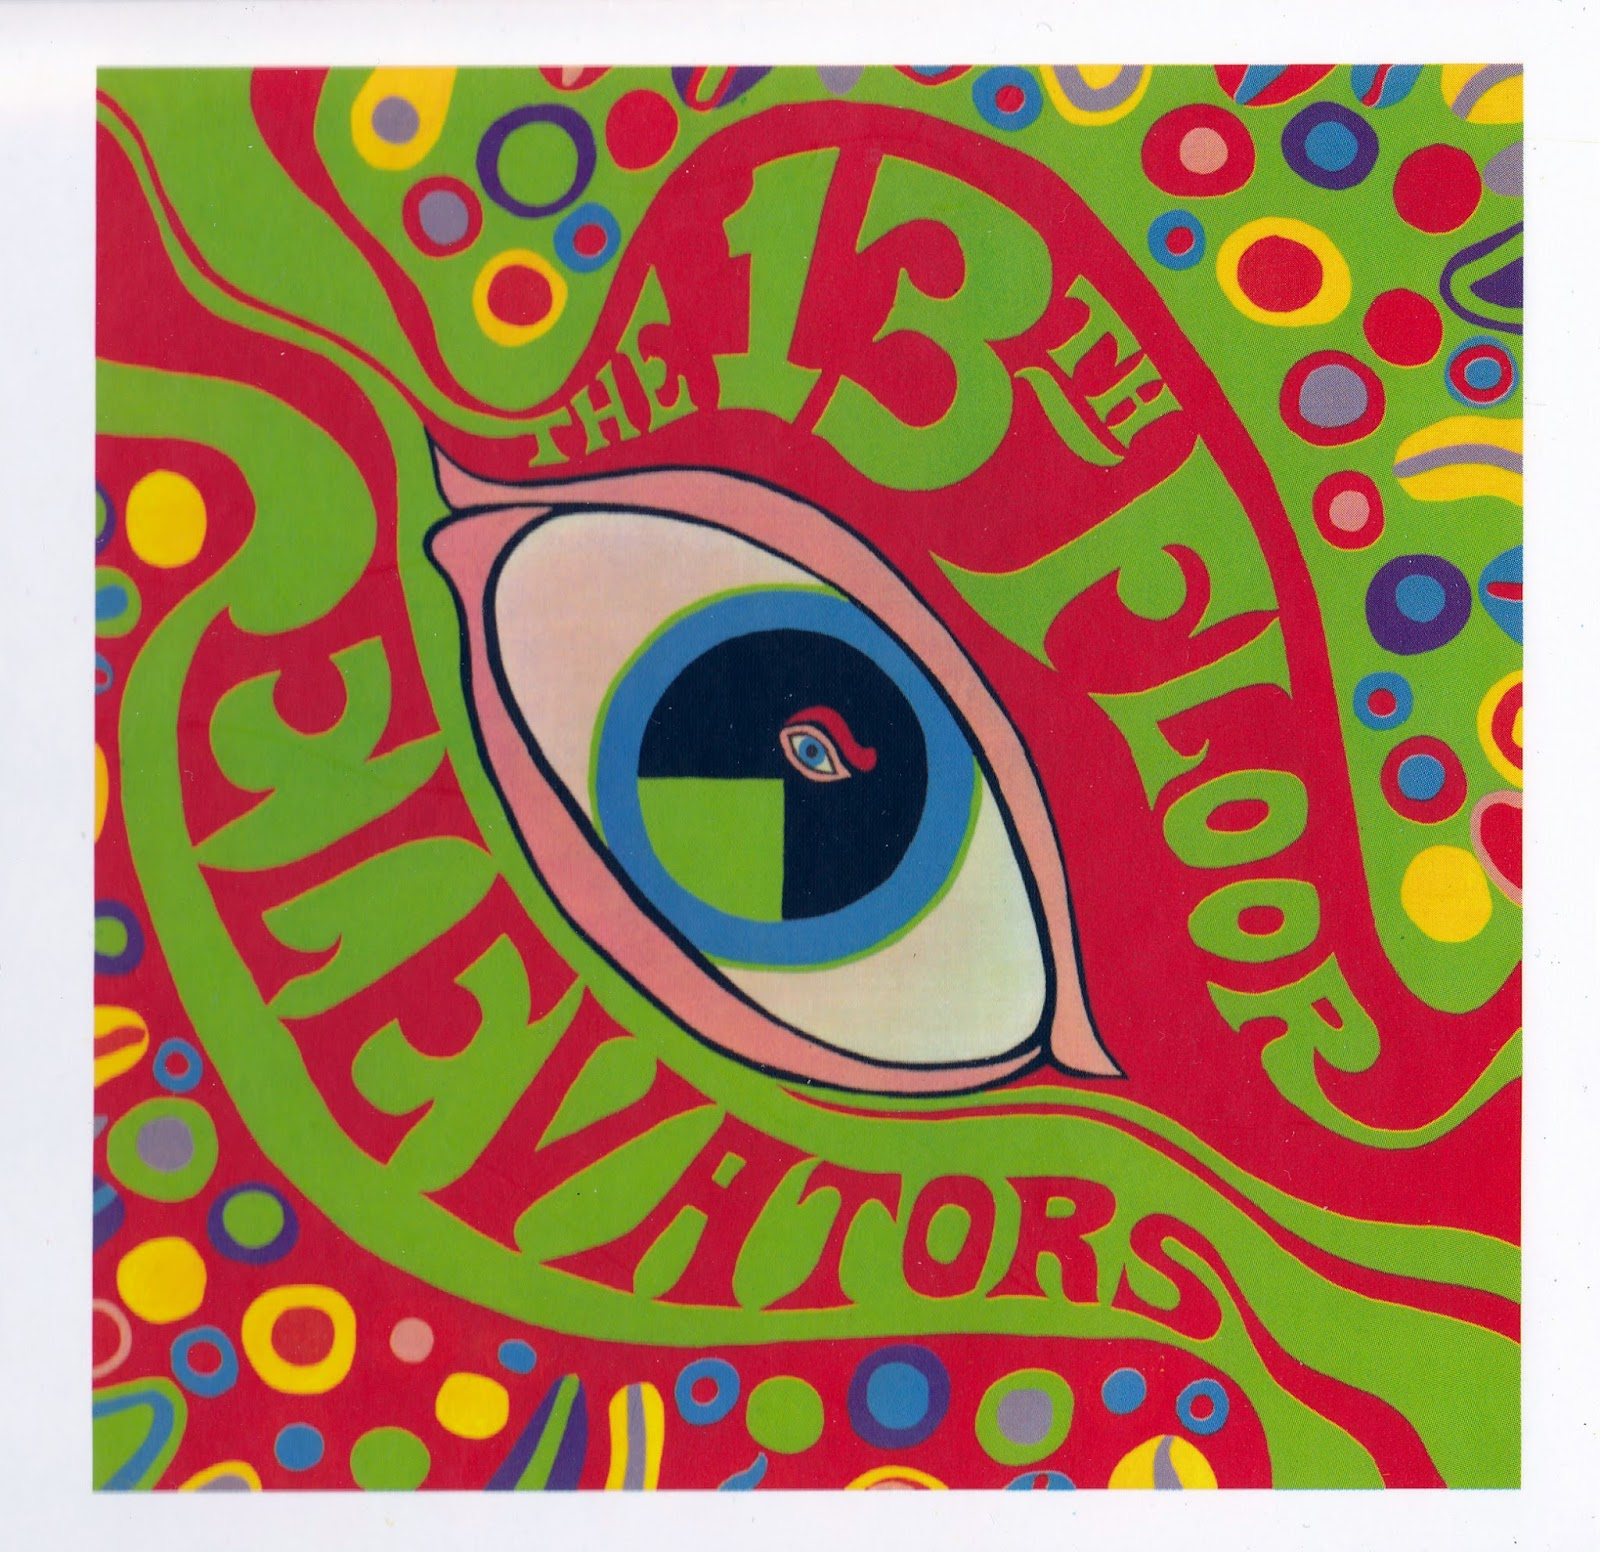 ratboy69 the 13th floor elevators psychedelic sounds of